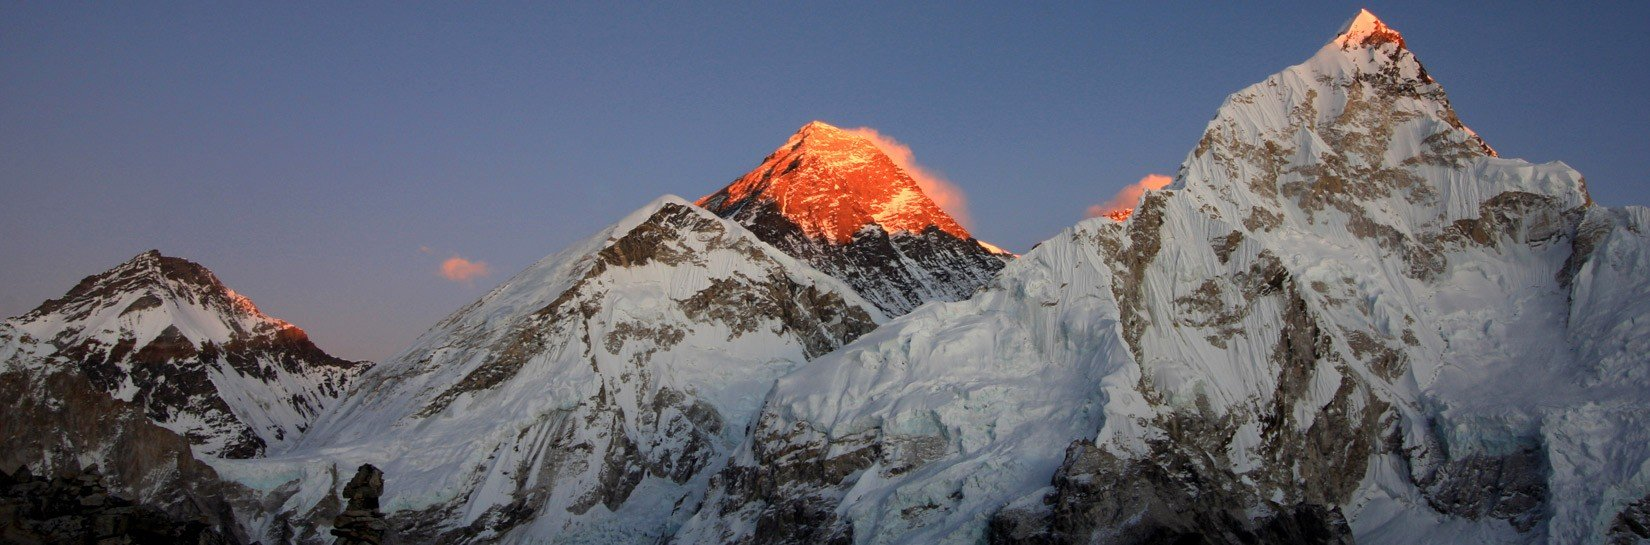 Mount Everest ( Sagarmatha)